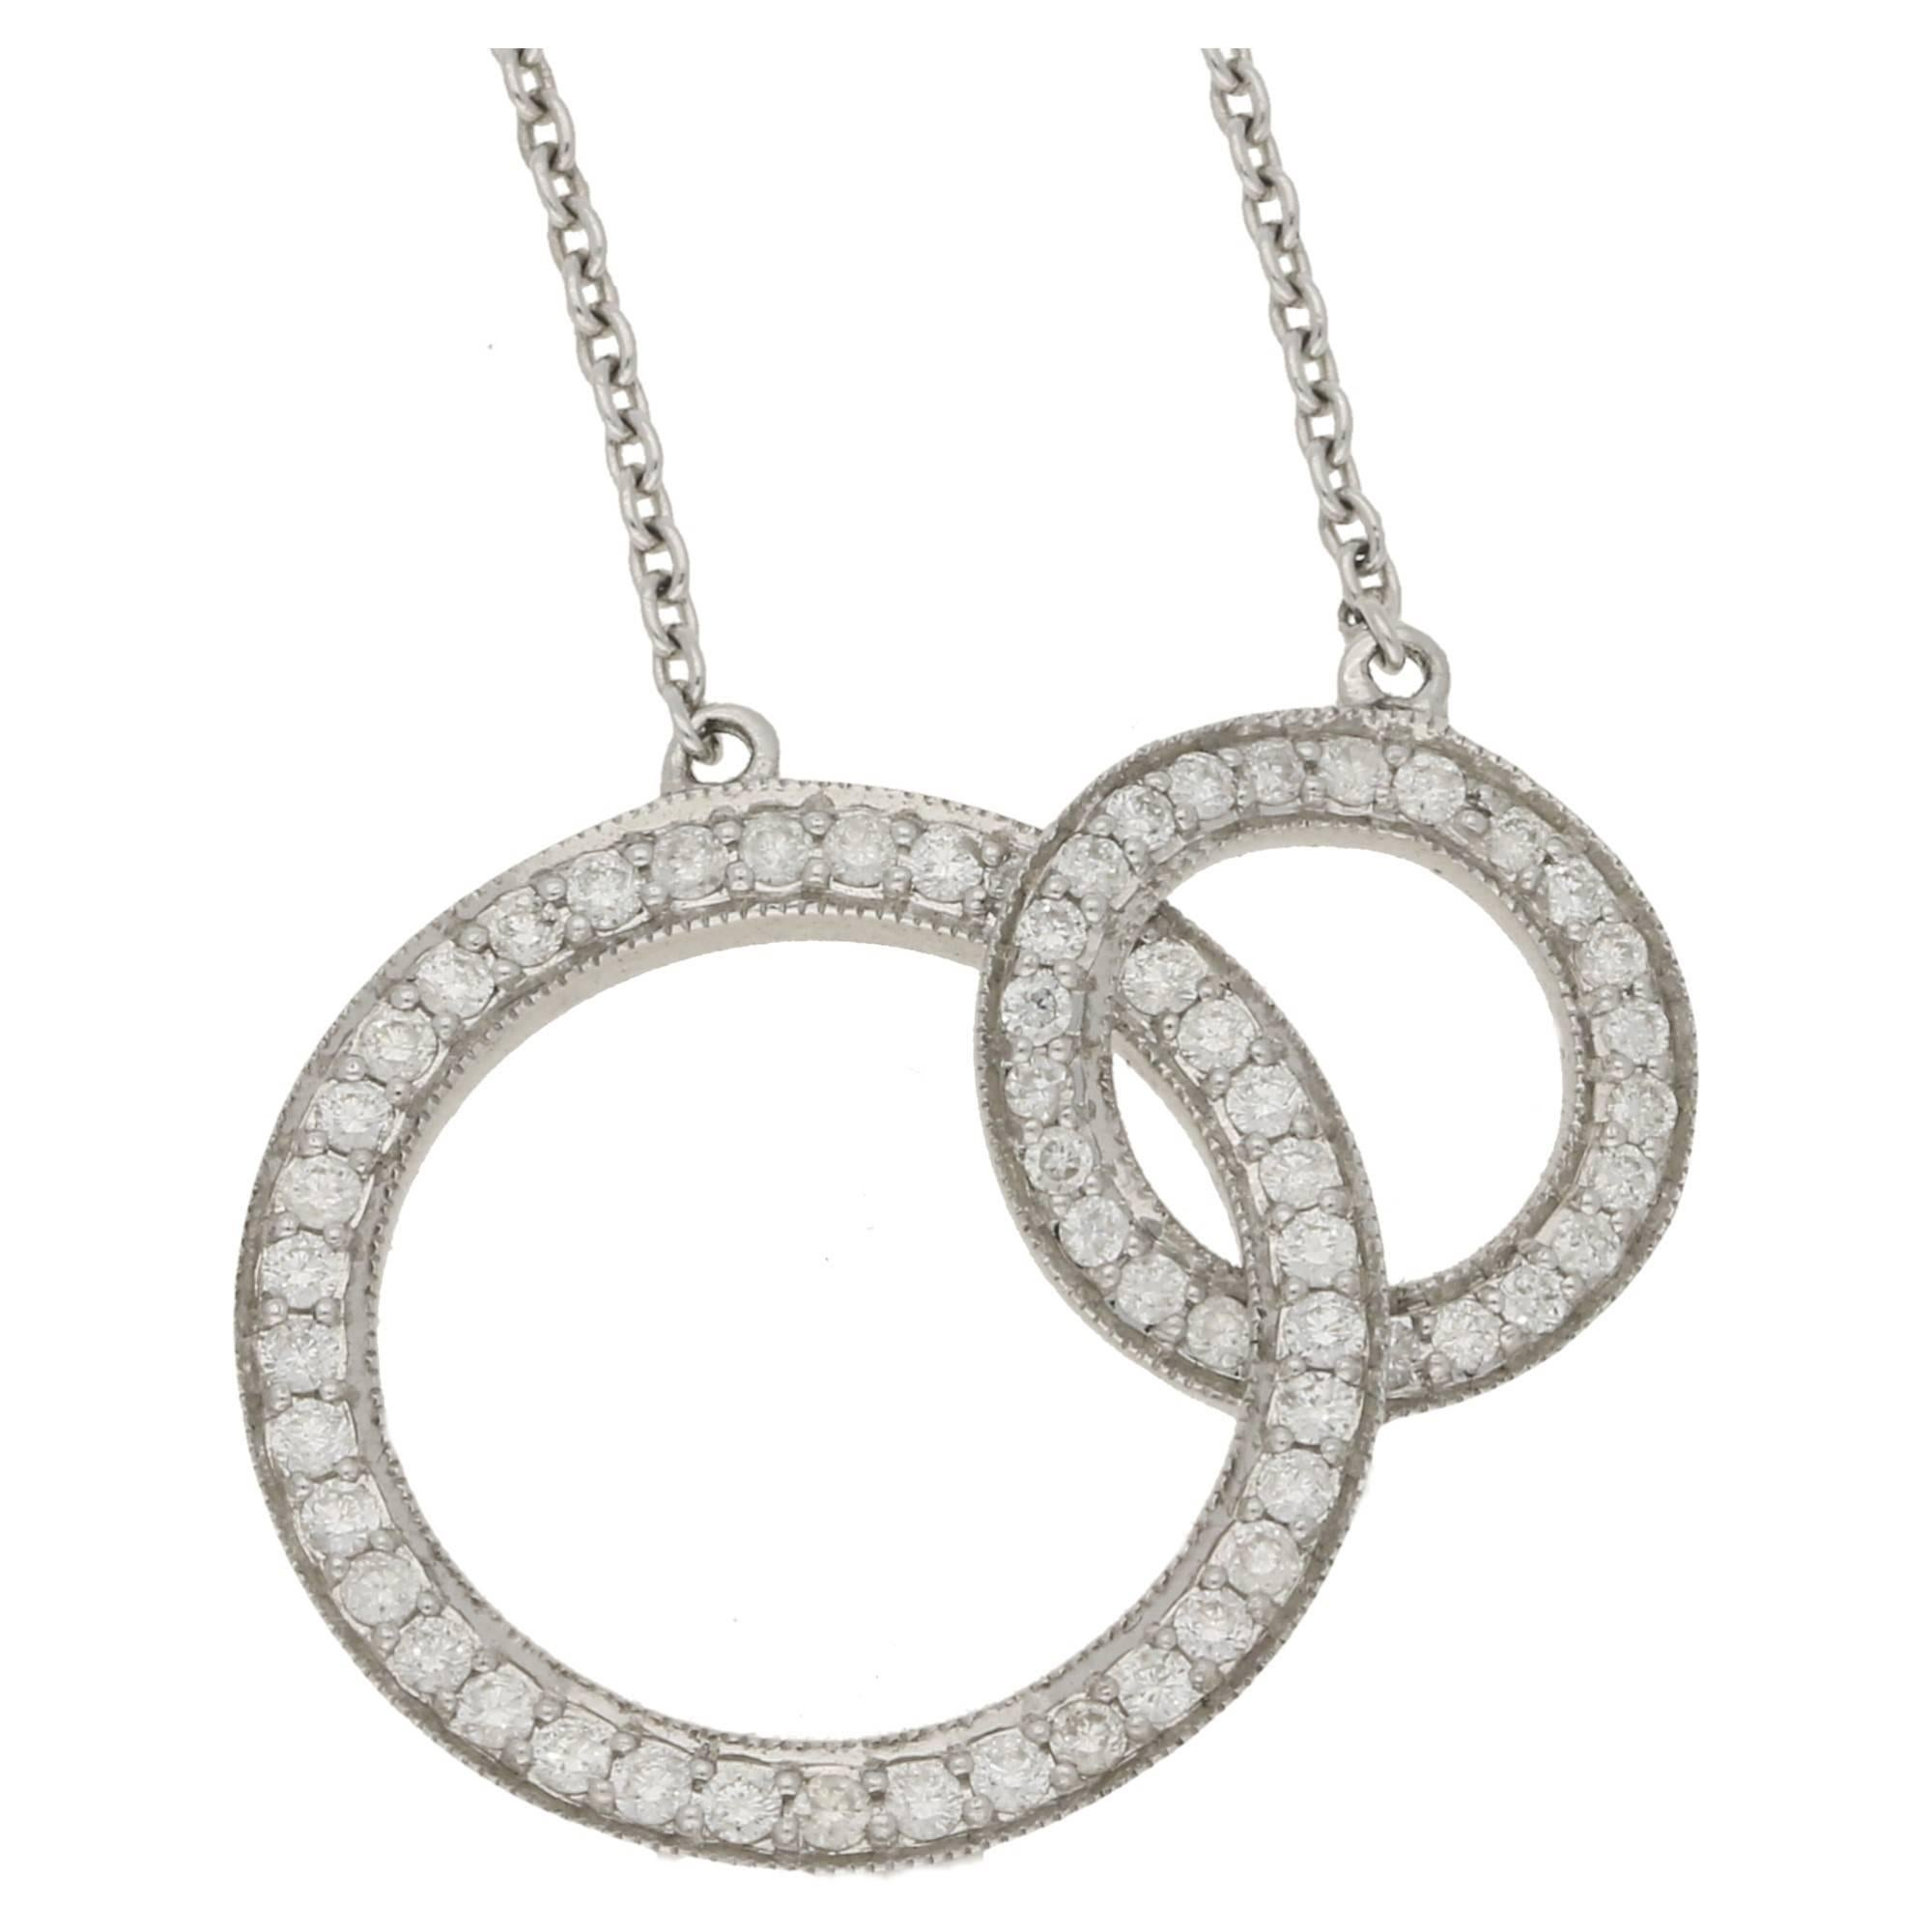 ii necklace selin products yg white wd marquise diamond defne pendant sapphire defnenecklace selinkent kent